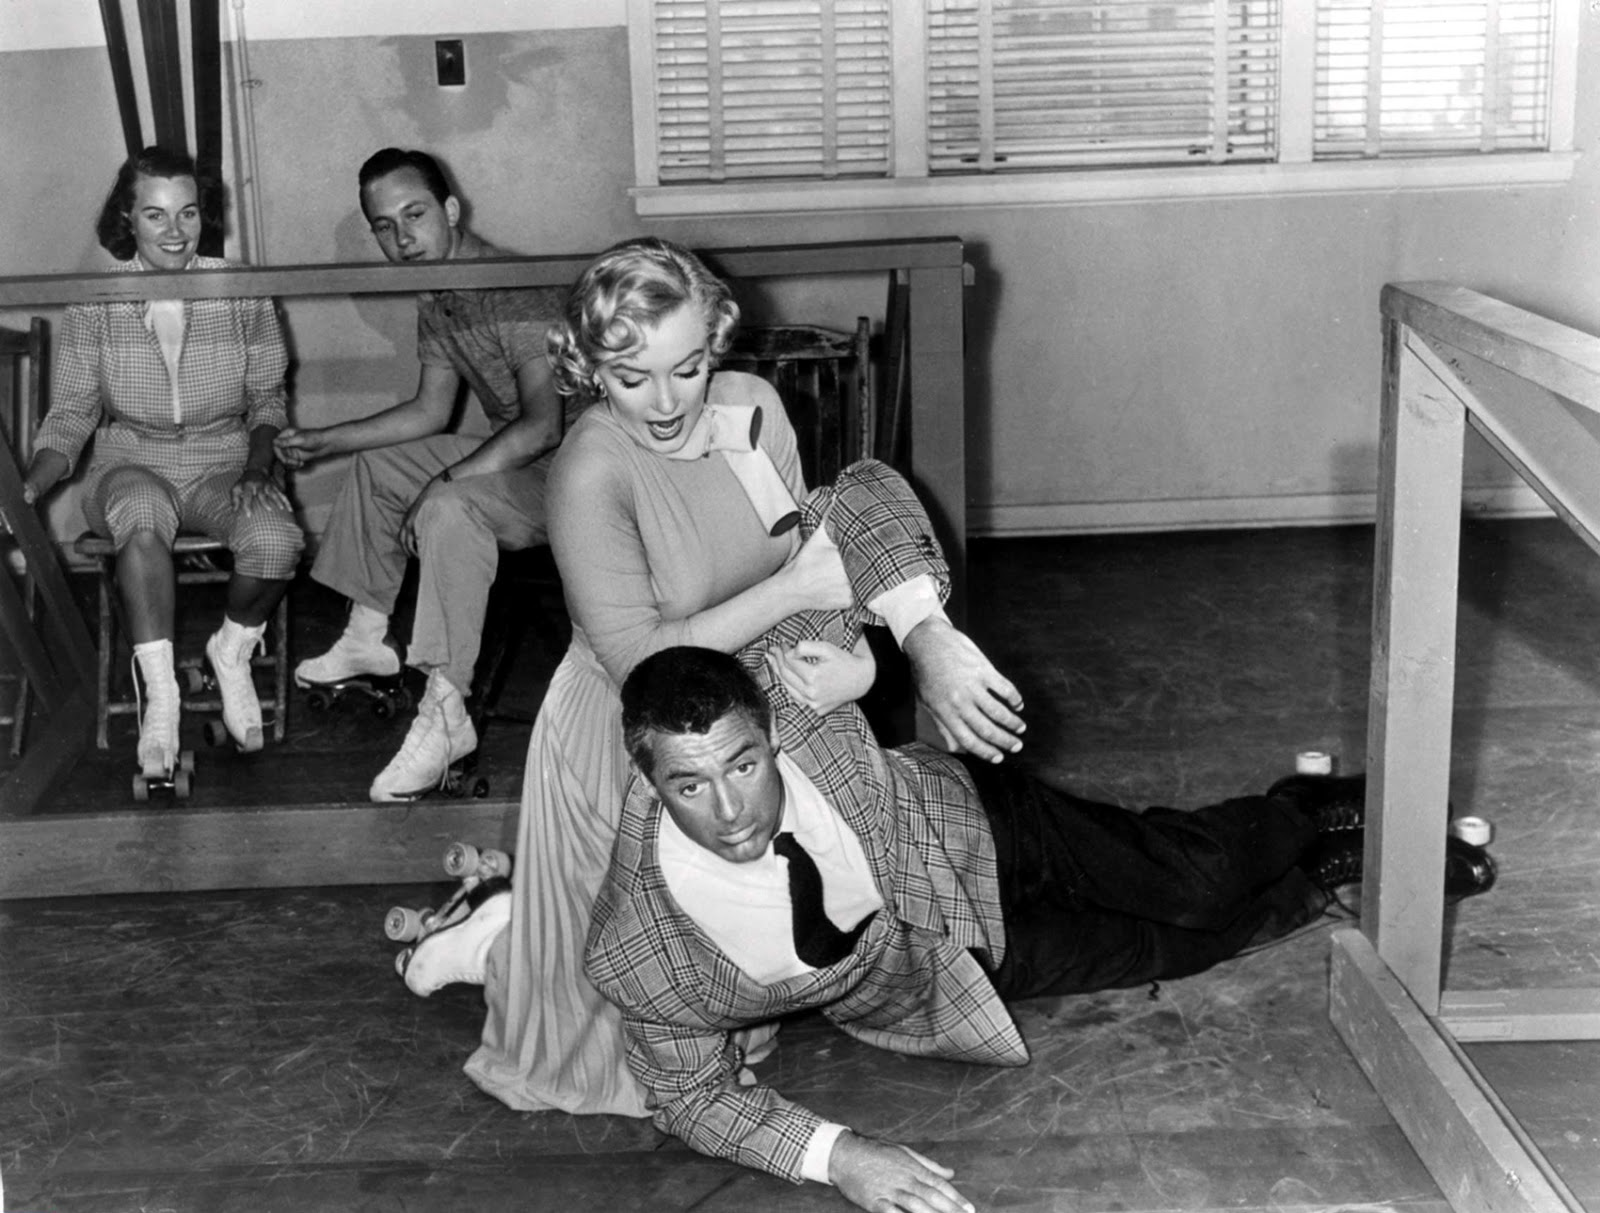 Crime Scene Photos Of Marilyn Monroe Marilyn monroe and cary grant